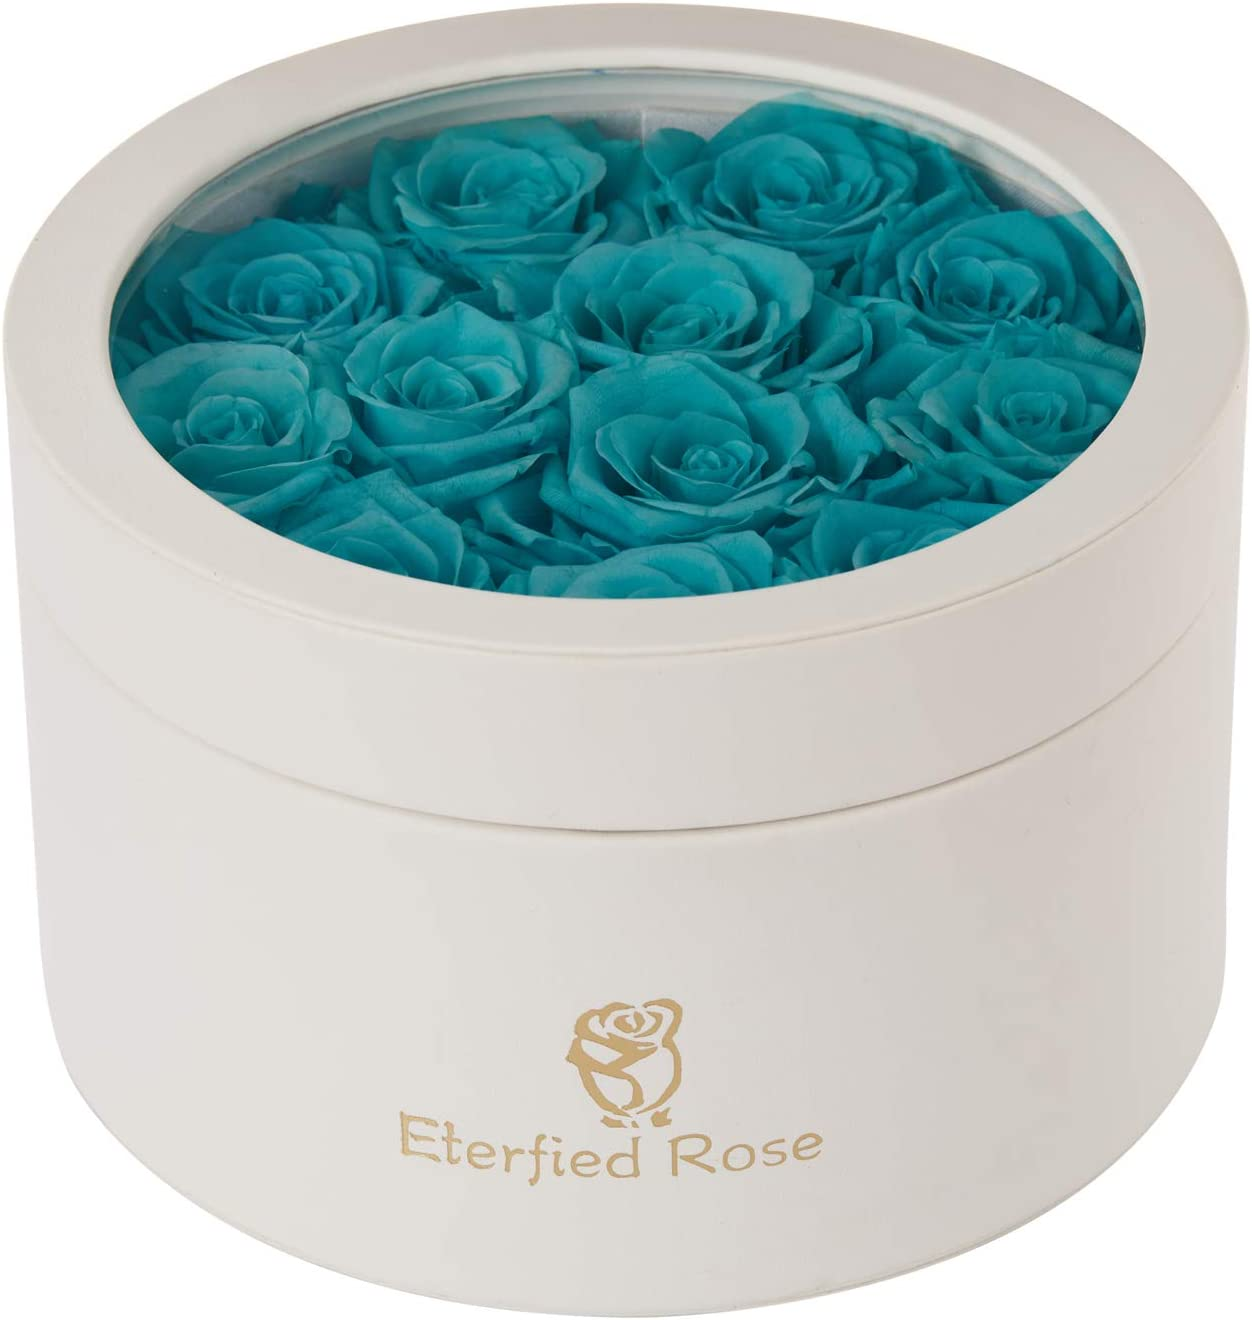 Eterfield Preserved Roses That Last a Year Eternal Roses in a Box Real Rose Without Fragrance Gift for Her (Robin Egg Blue Roses, PU Leather White Box)